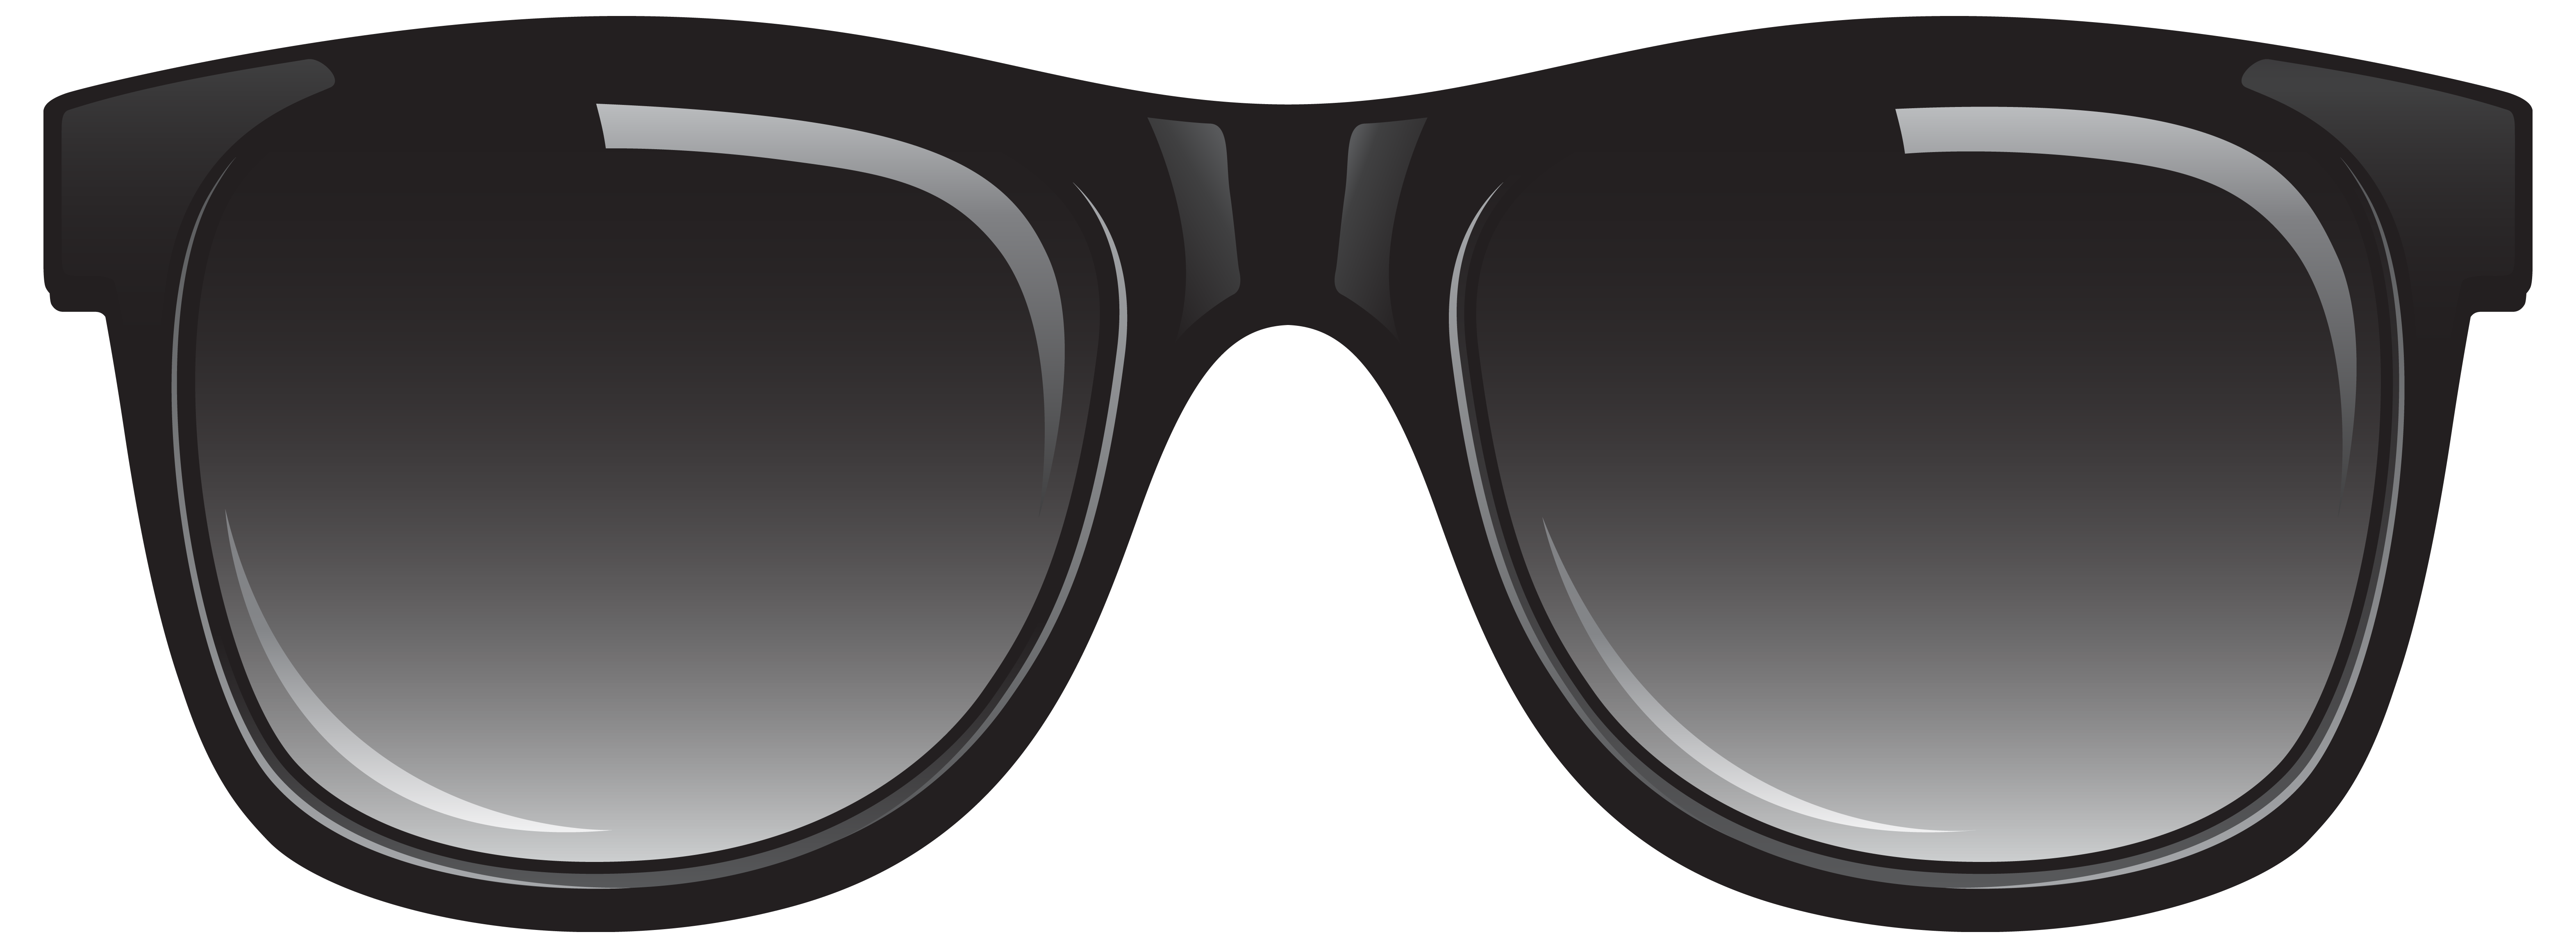 172 Sunglasses Png free clipart.